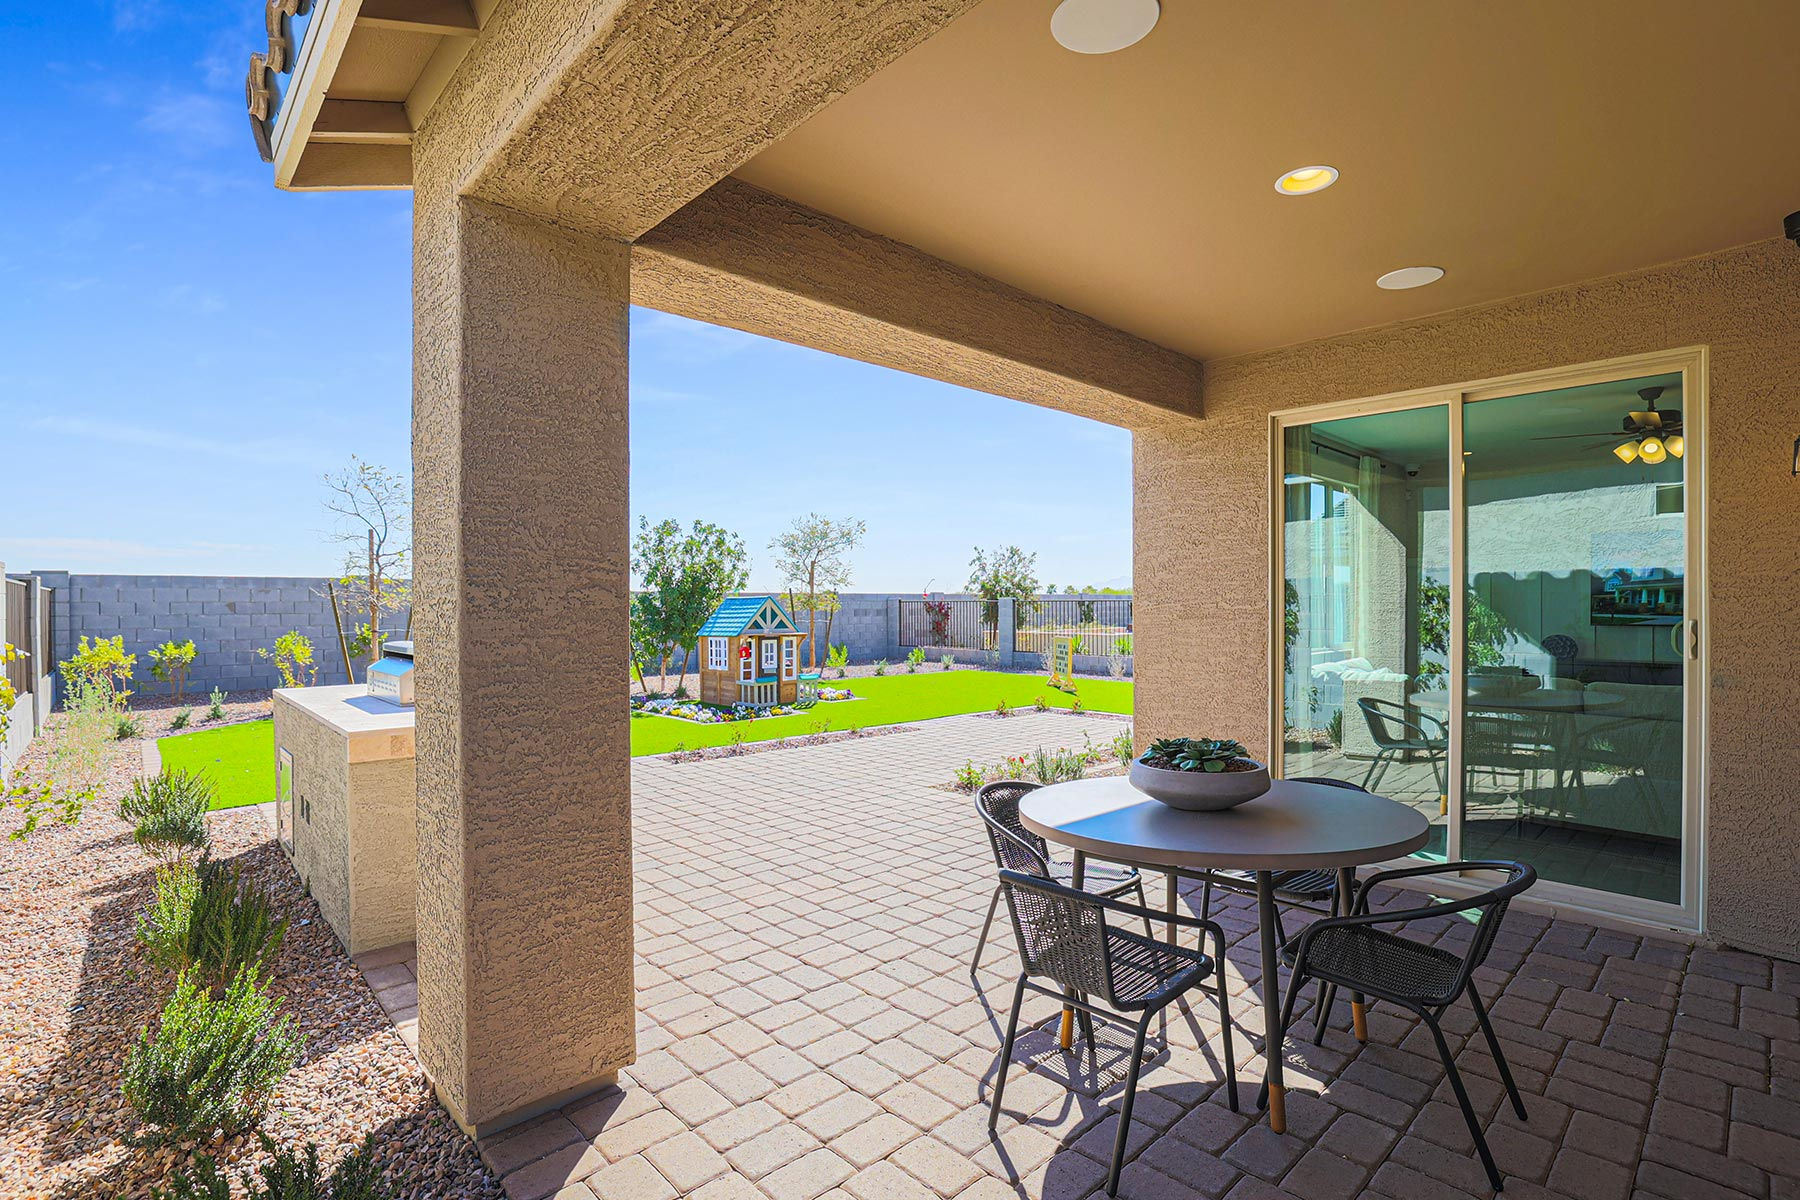 Aries Plan MATPHX_AZC_Aries_Patio_1800x1200 at Azure Canyon in Litchfield Park Arizona by Mattamy Homes